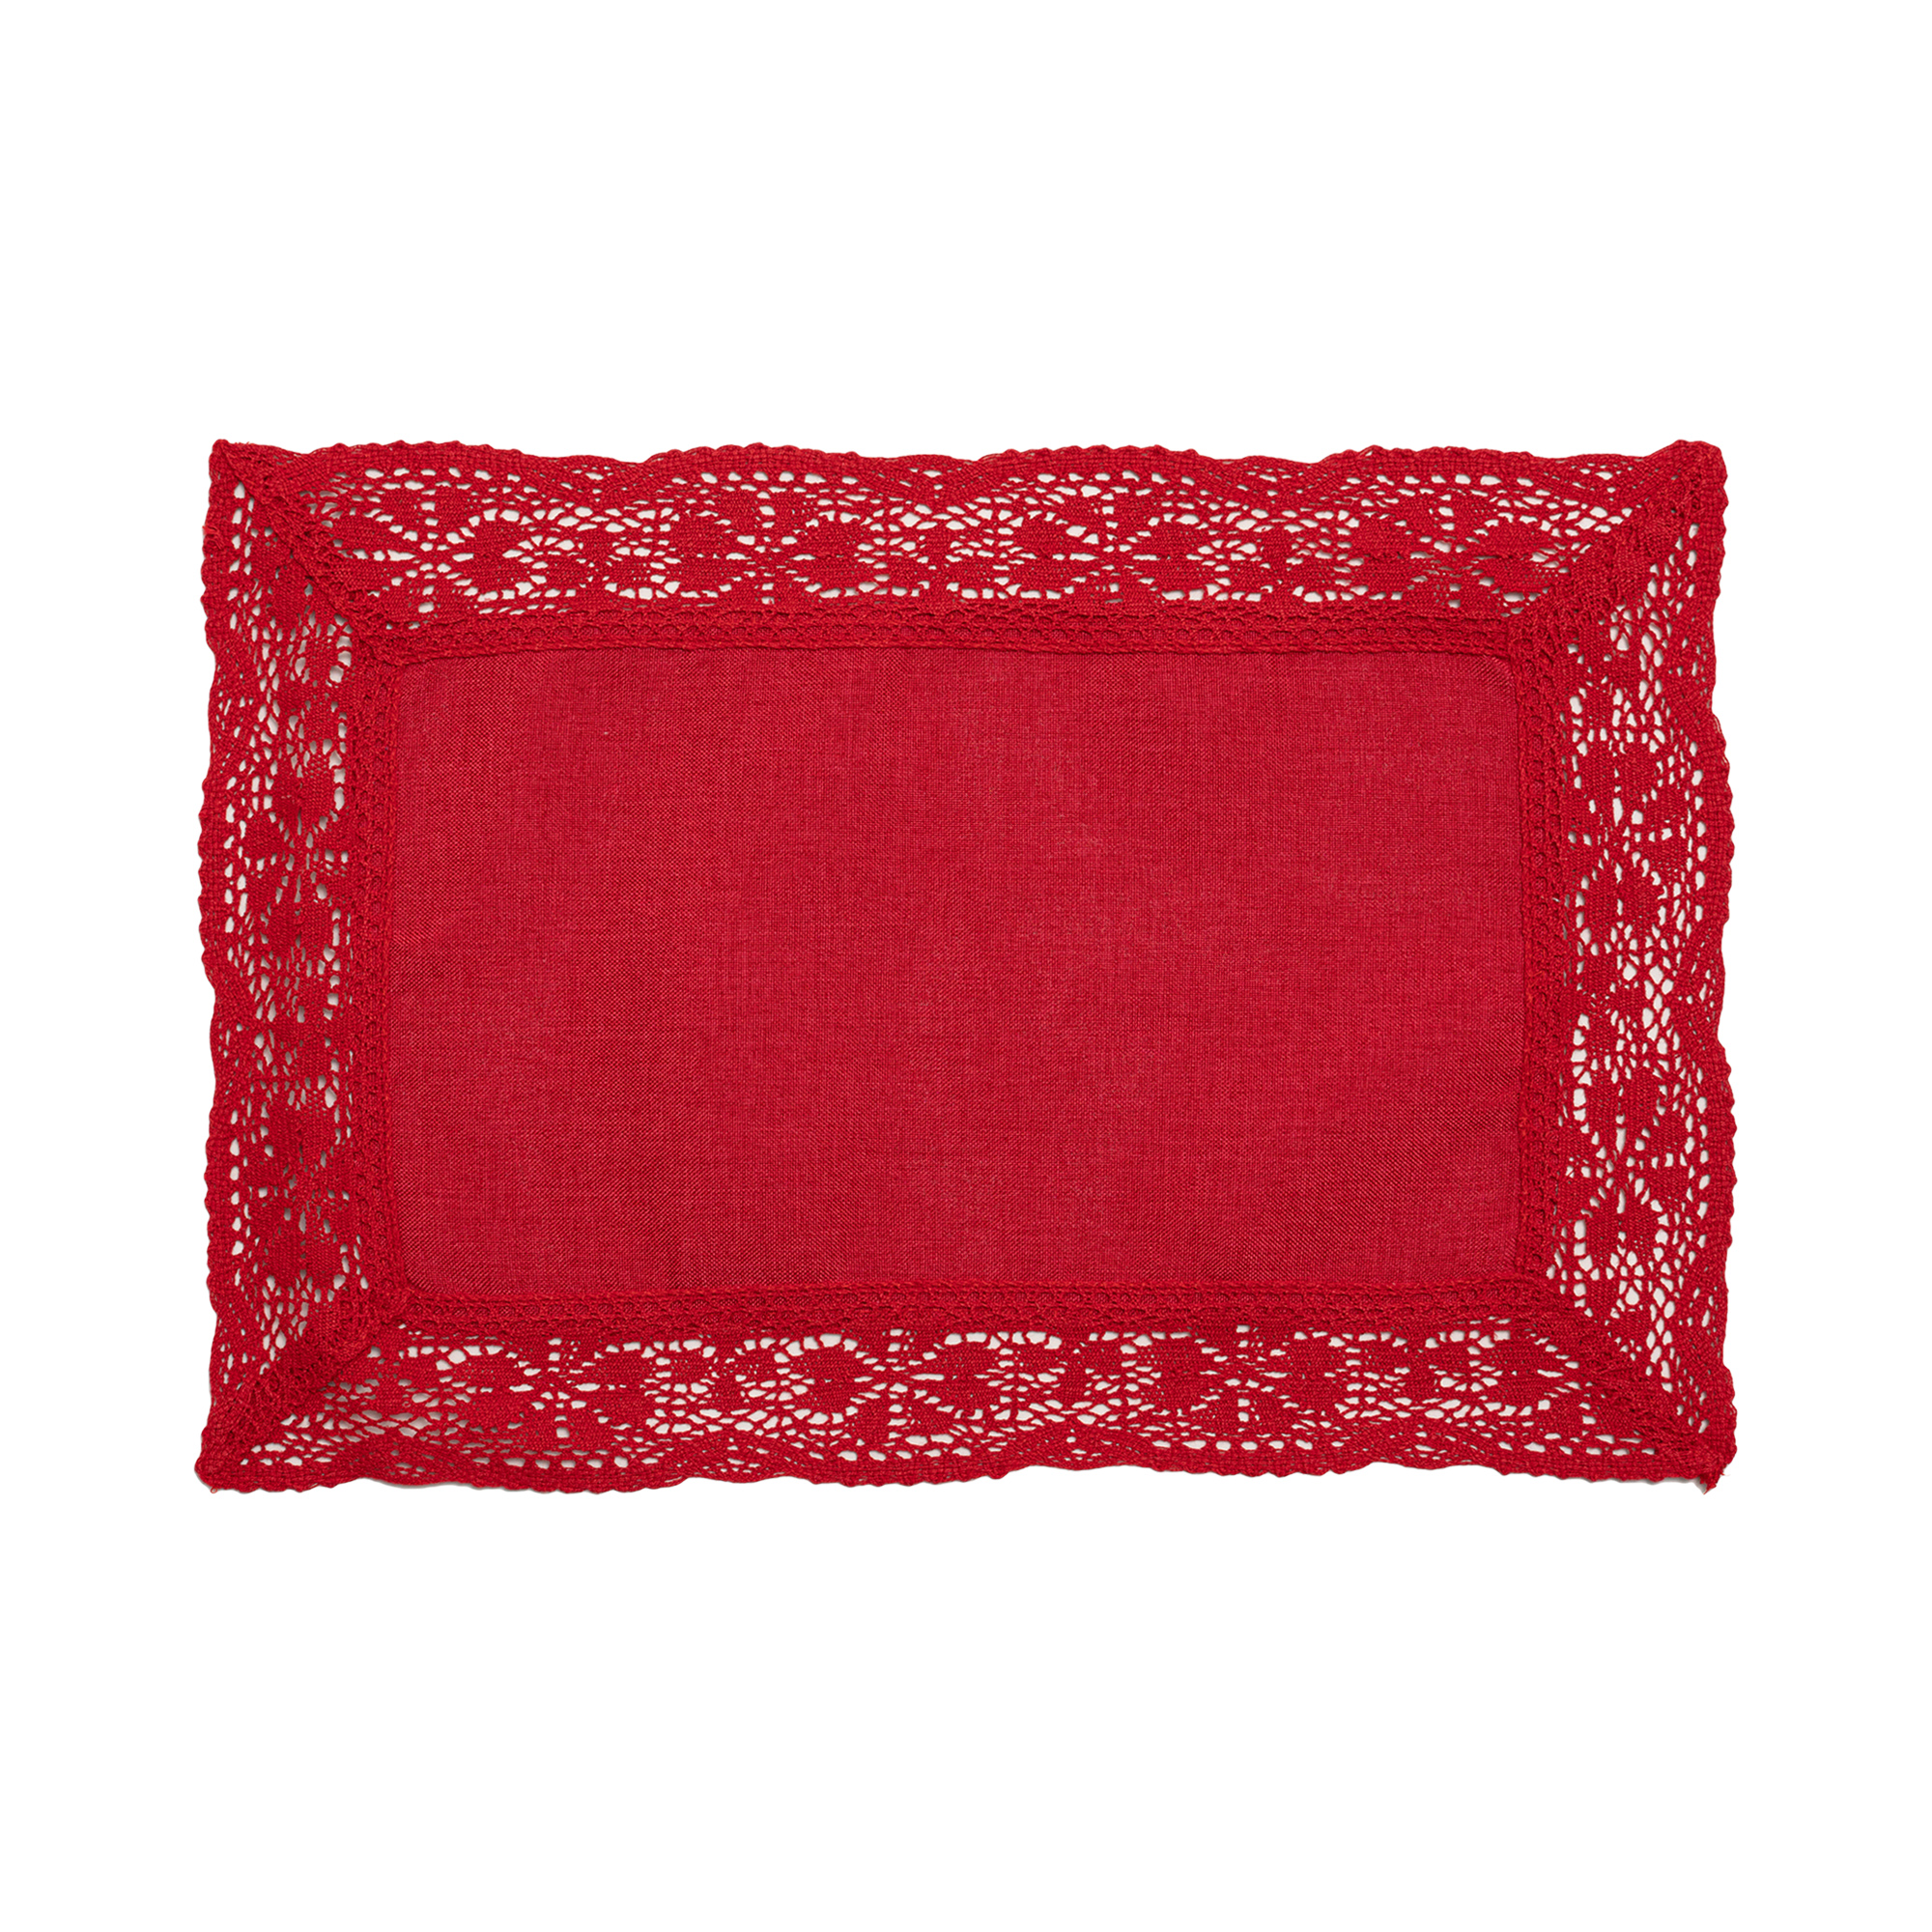 """Nostalgic Red Rectangle Placemats/Table Mats With 6cm Cotton Crochet Lace Edges. 30x45cm/12x18"""" (Red)"""